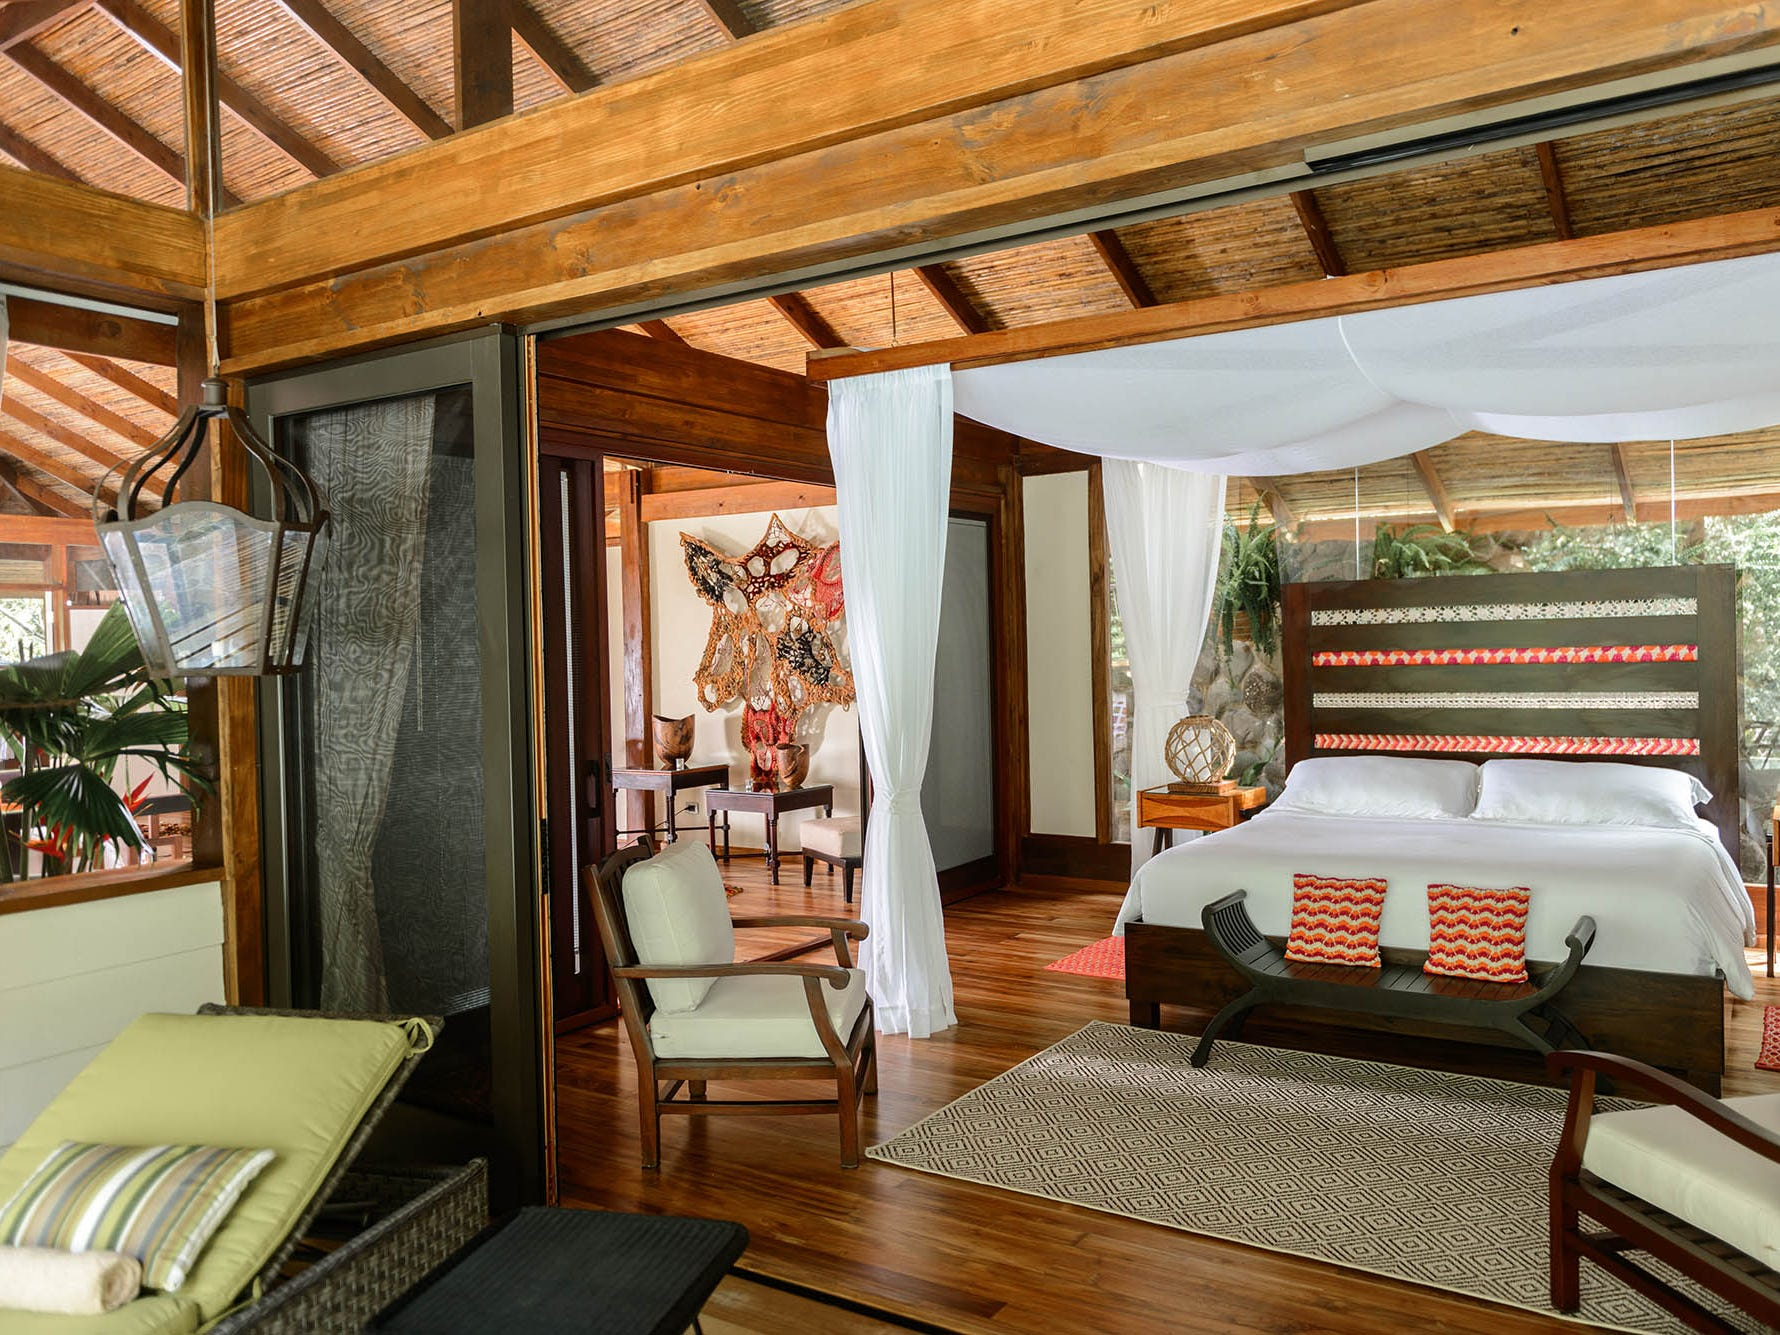 The upscale Pacuare Lodge has 20 suites with a sophisticated interior design inspired by the craftsmanship and lodgings of the Cabécar indigenous people.